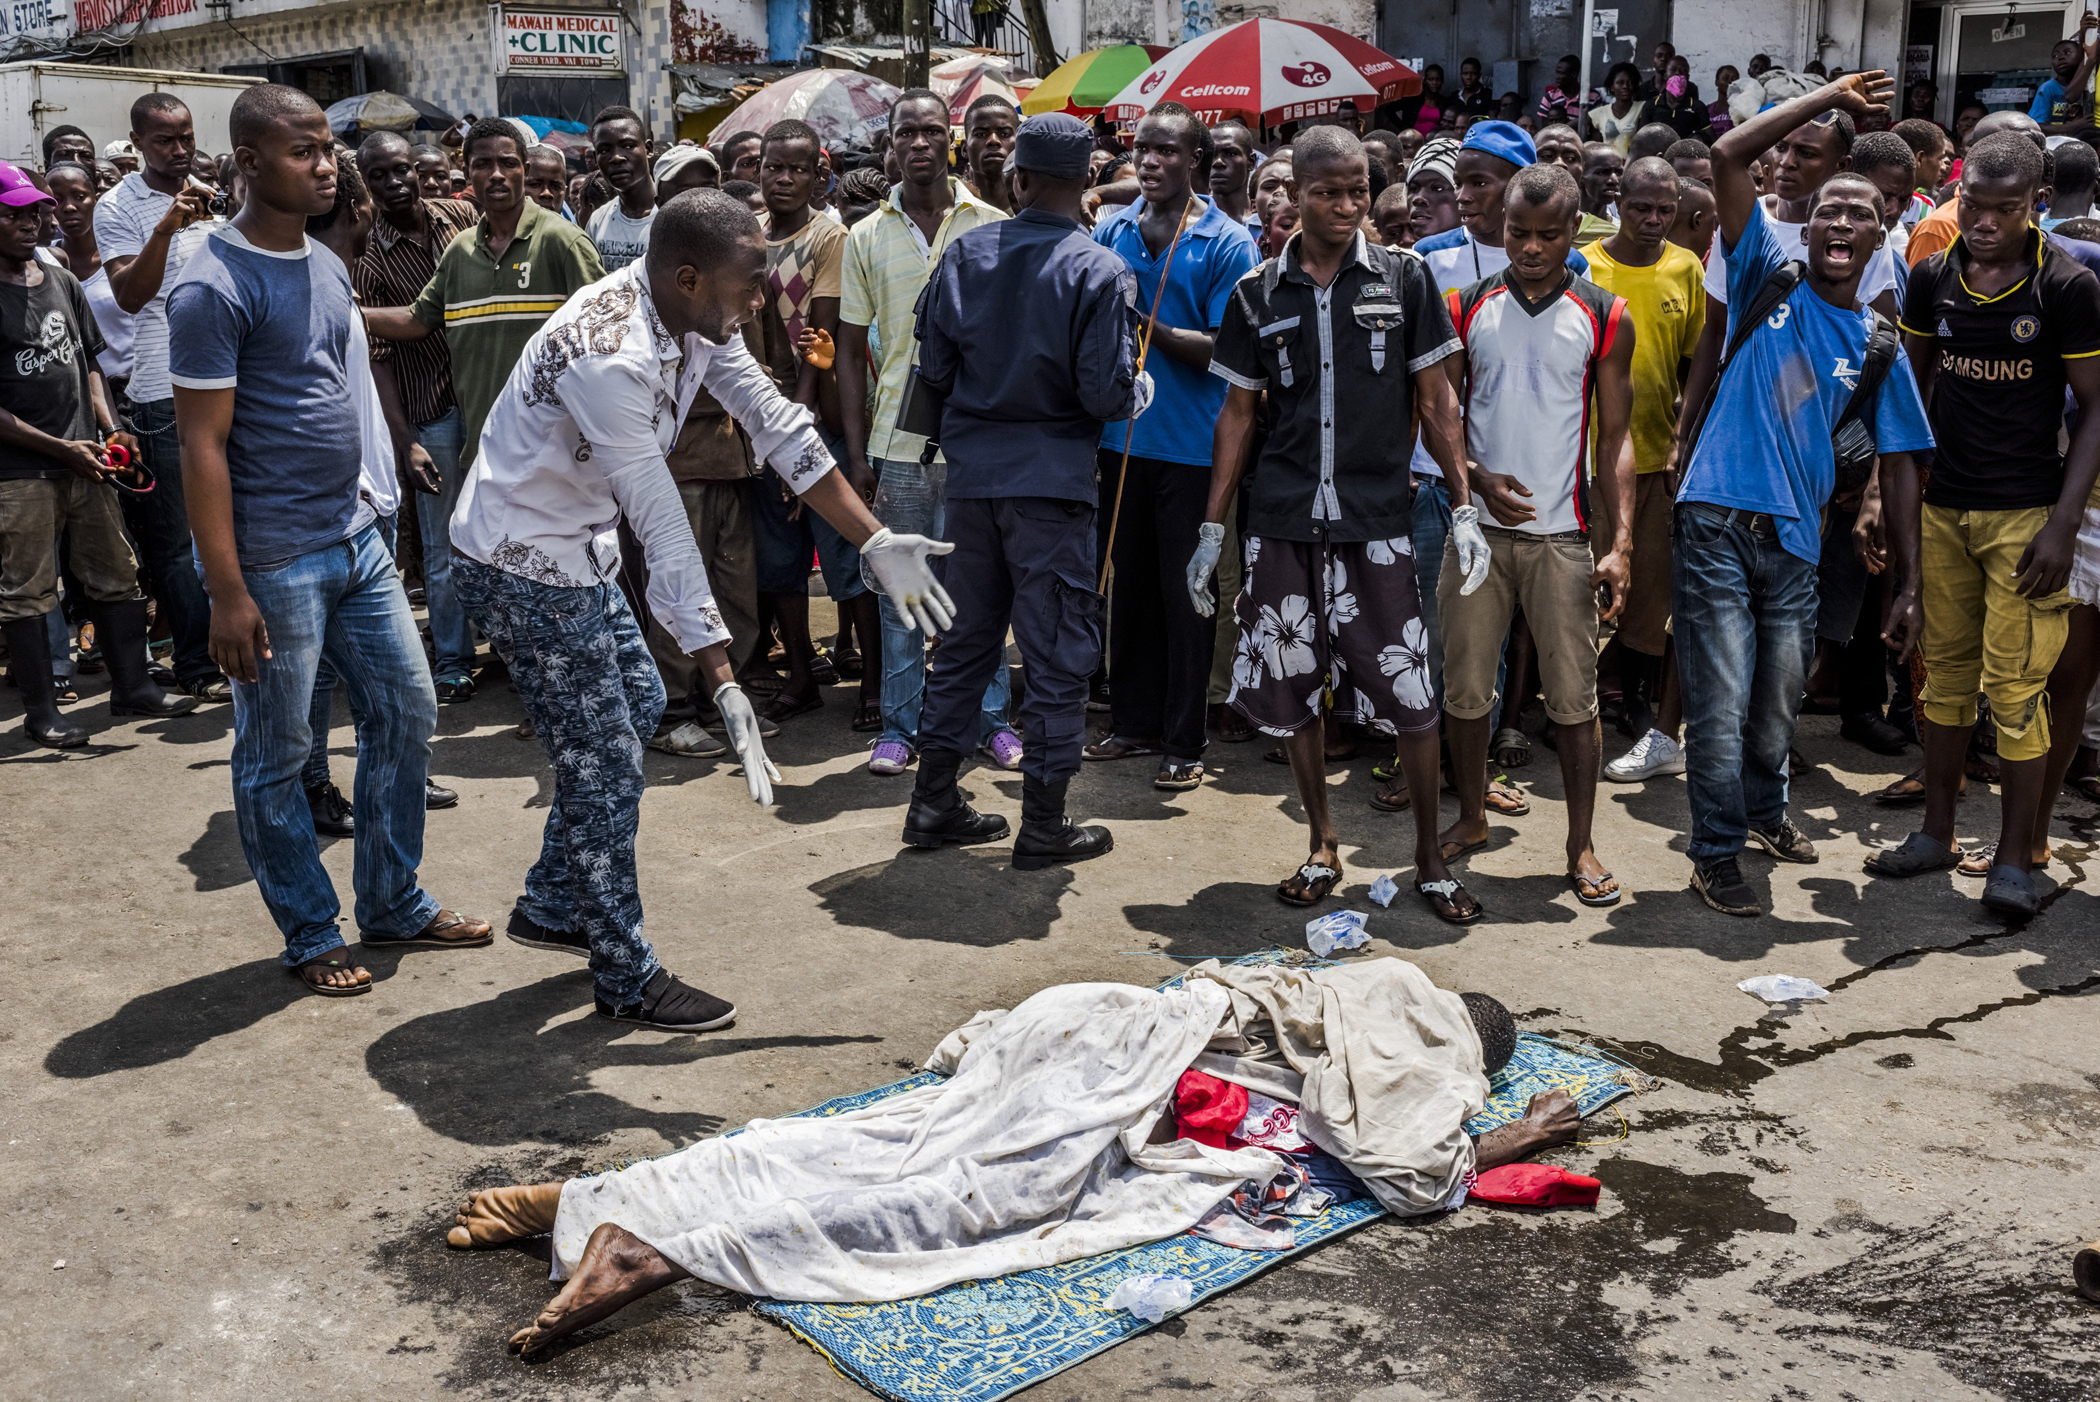 Residents look on as the body of a man suspected of dying from Ebola lies in a busy street, after it was reportedly dragged there to draw attention of burial teams following days of failed attempts by his family to have his body picked up, in Monrovia, Liberia, Sept. 15, 2014.